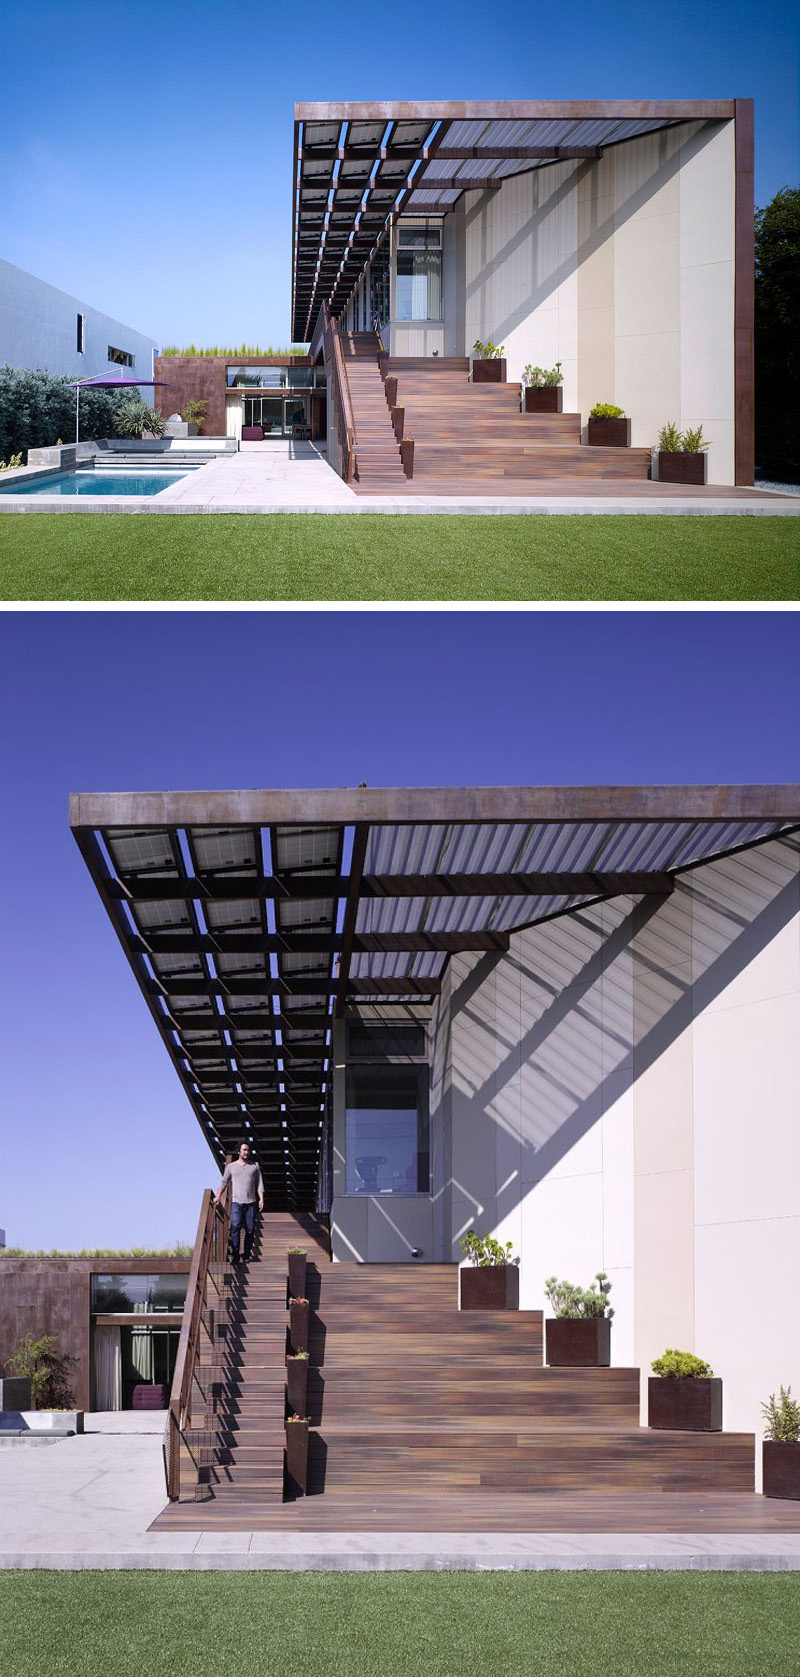 Architecture firm Brooks + Scarpa, have designed this modern net-zero energy family home in Venice, California.